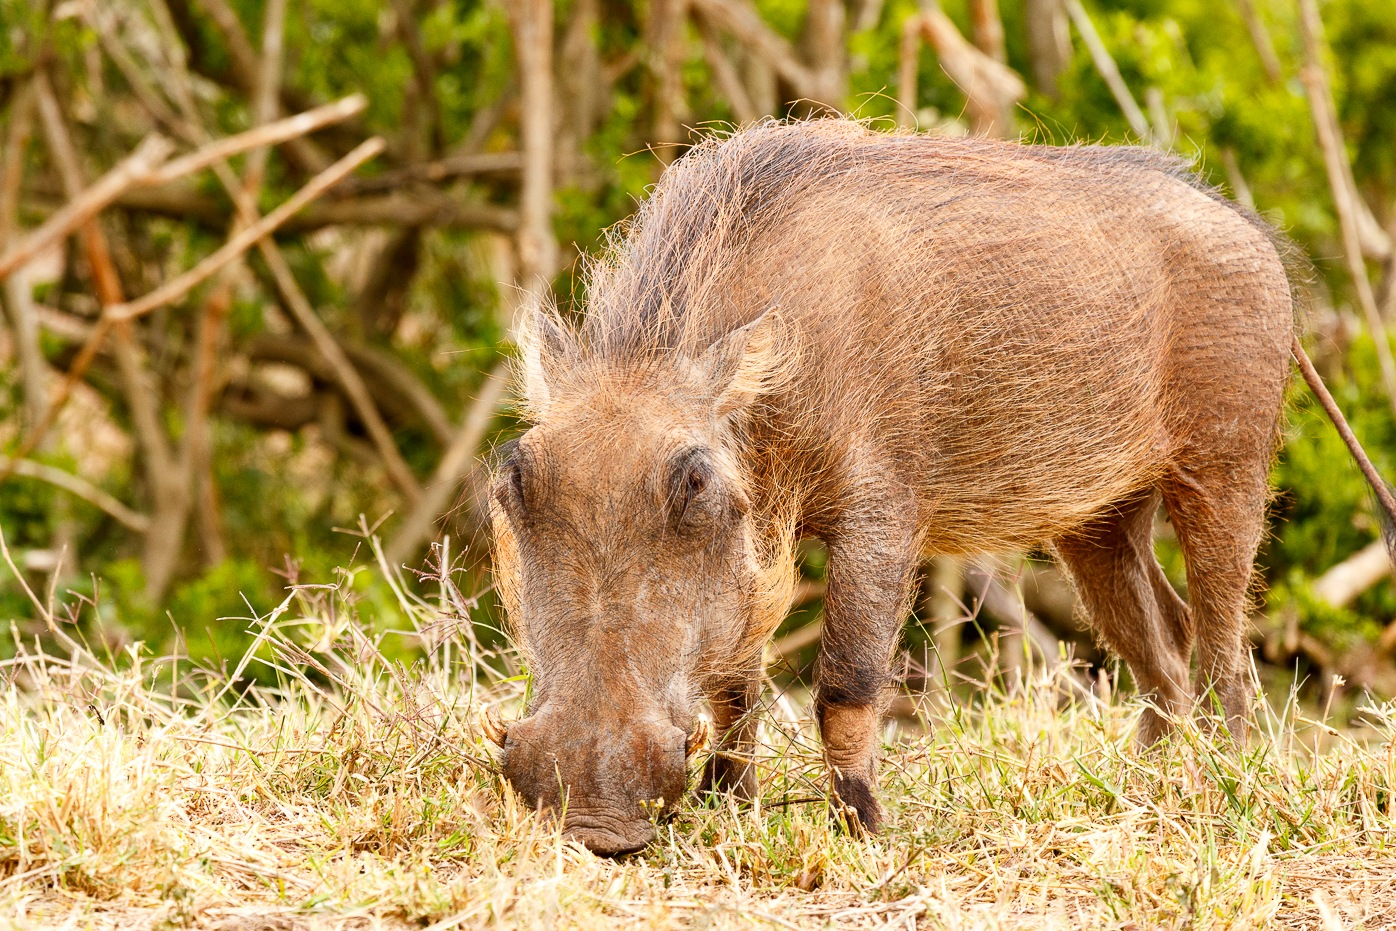 Warthog eating intensely on his grass  by Charissa de Scande Lotter